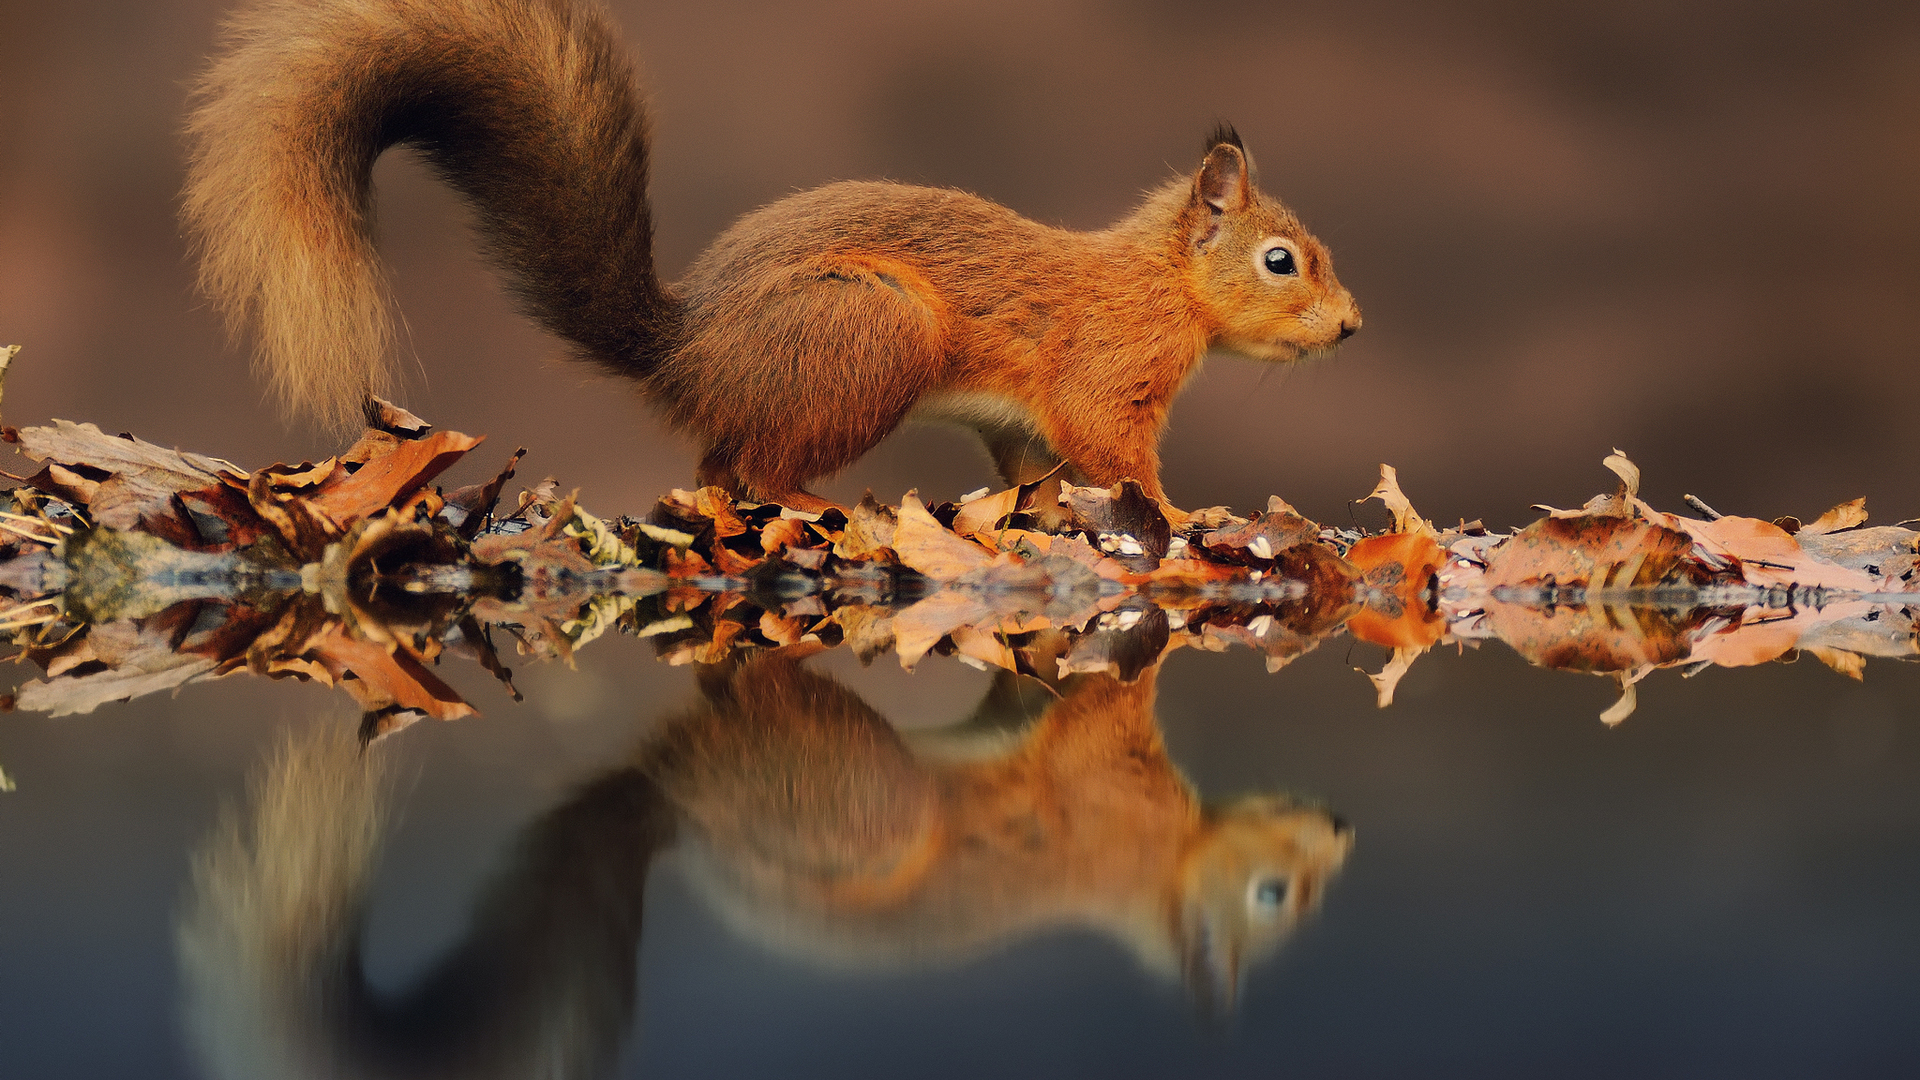 Beautiful Squirrel Wallpaper